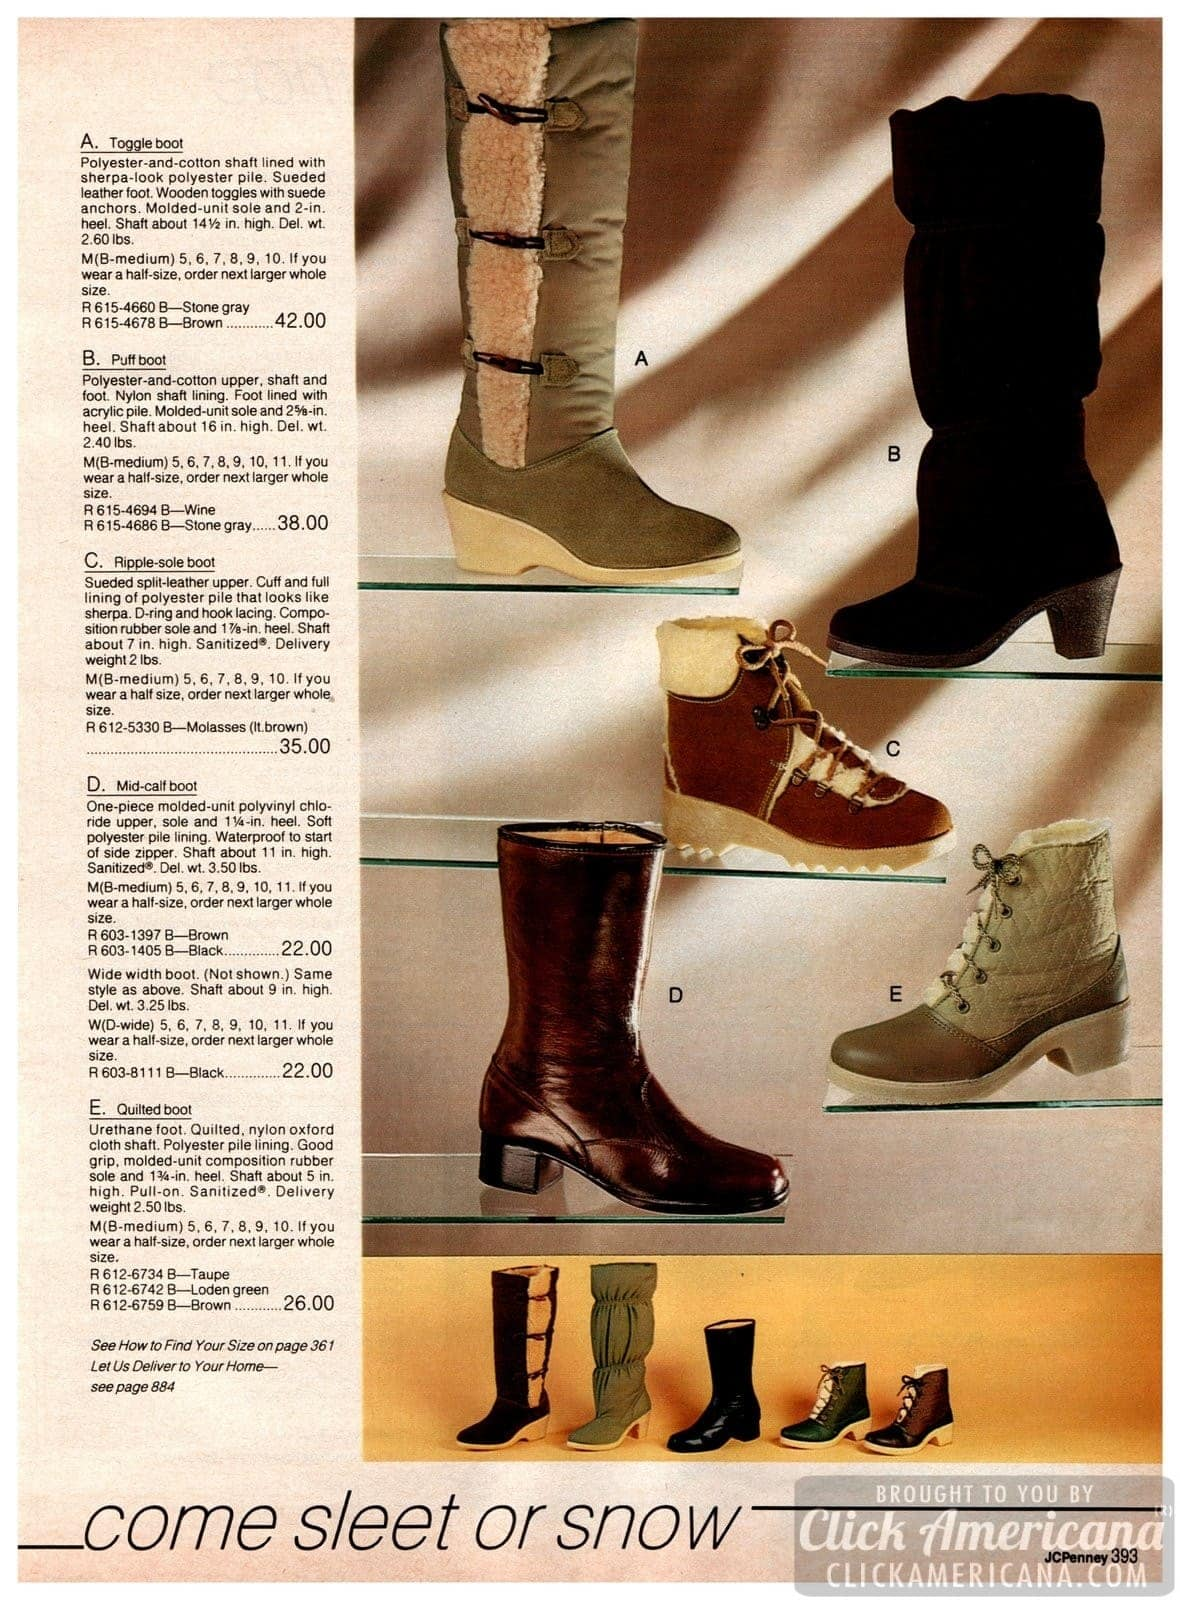 Wintery cold-weather boots - toggle boots, puff, ripple sols, mid-calf and quilted-look boots